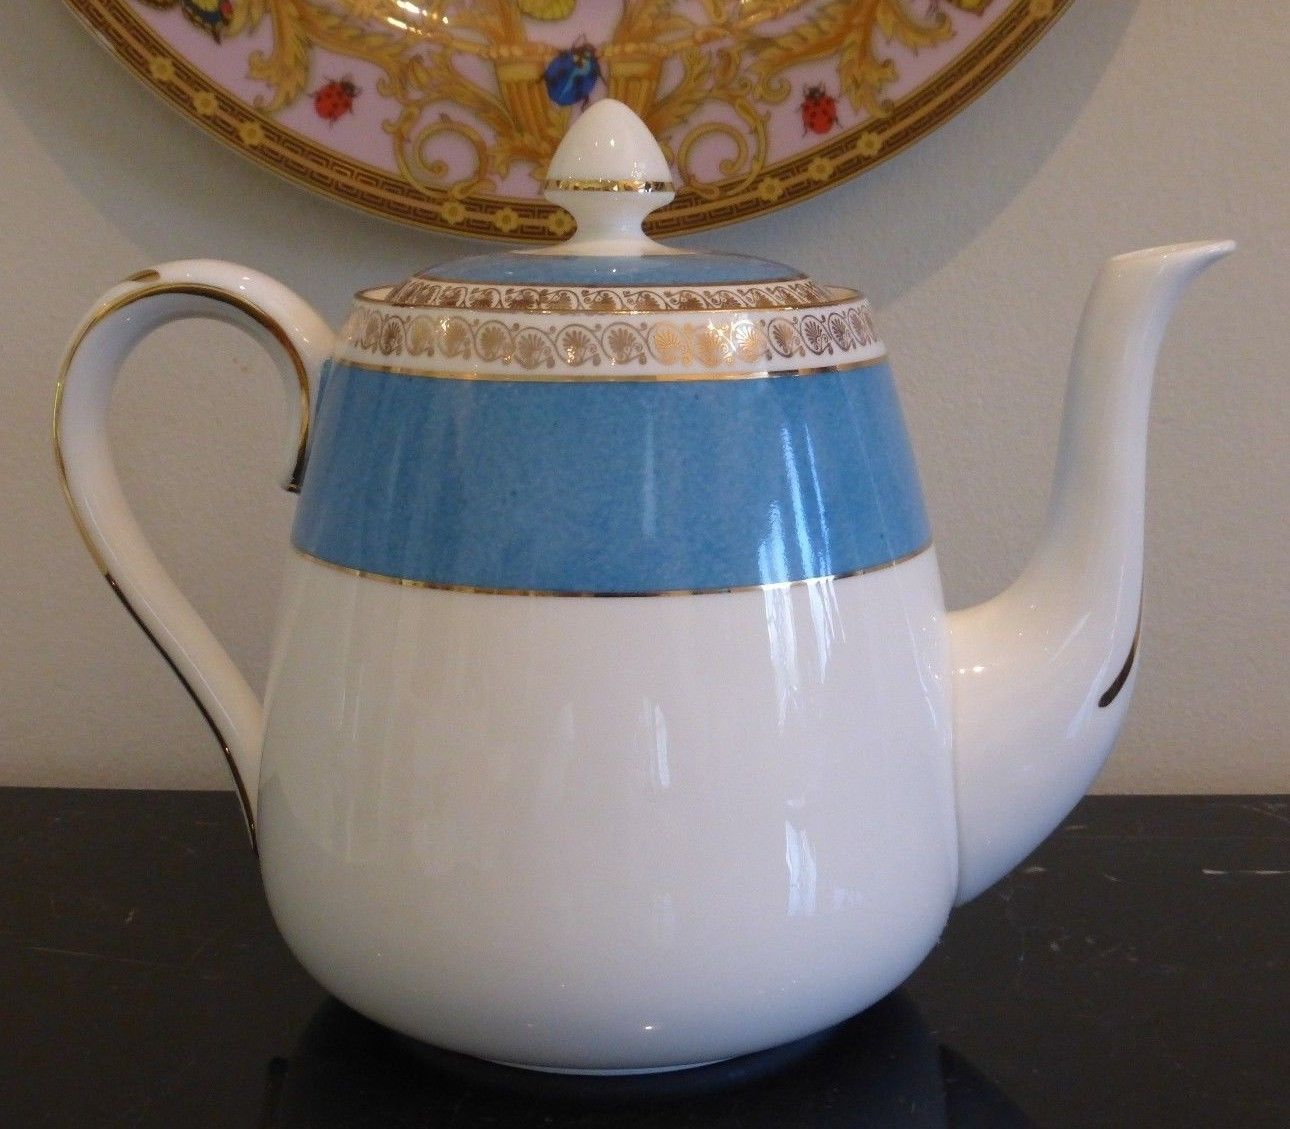 Primary image for ANTIQUE CROWN STAFFORDSHIRE TURQUOISE AND GOLD TEAPOT